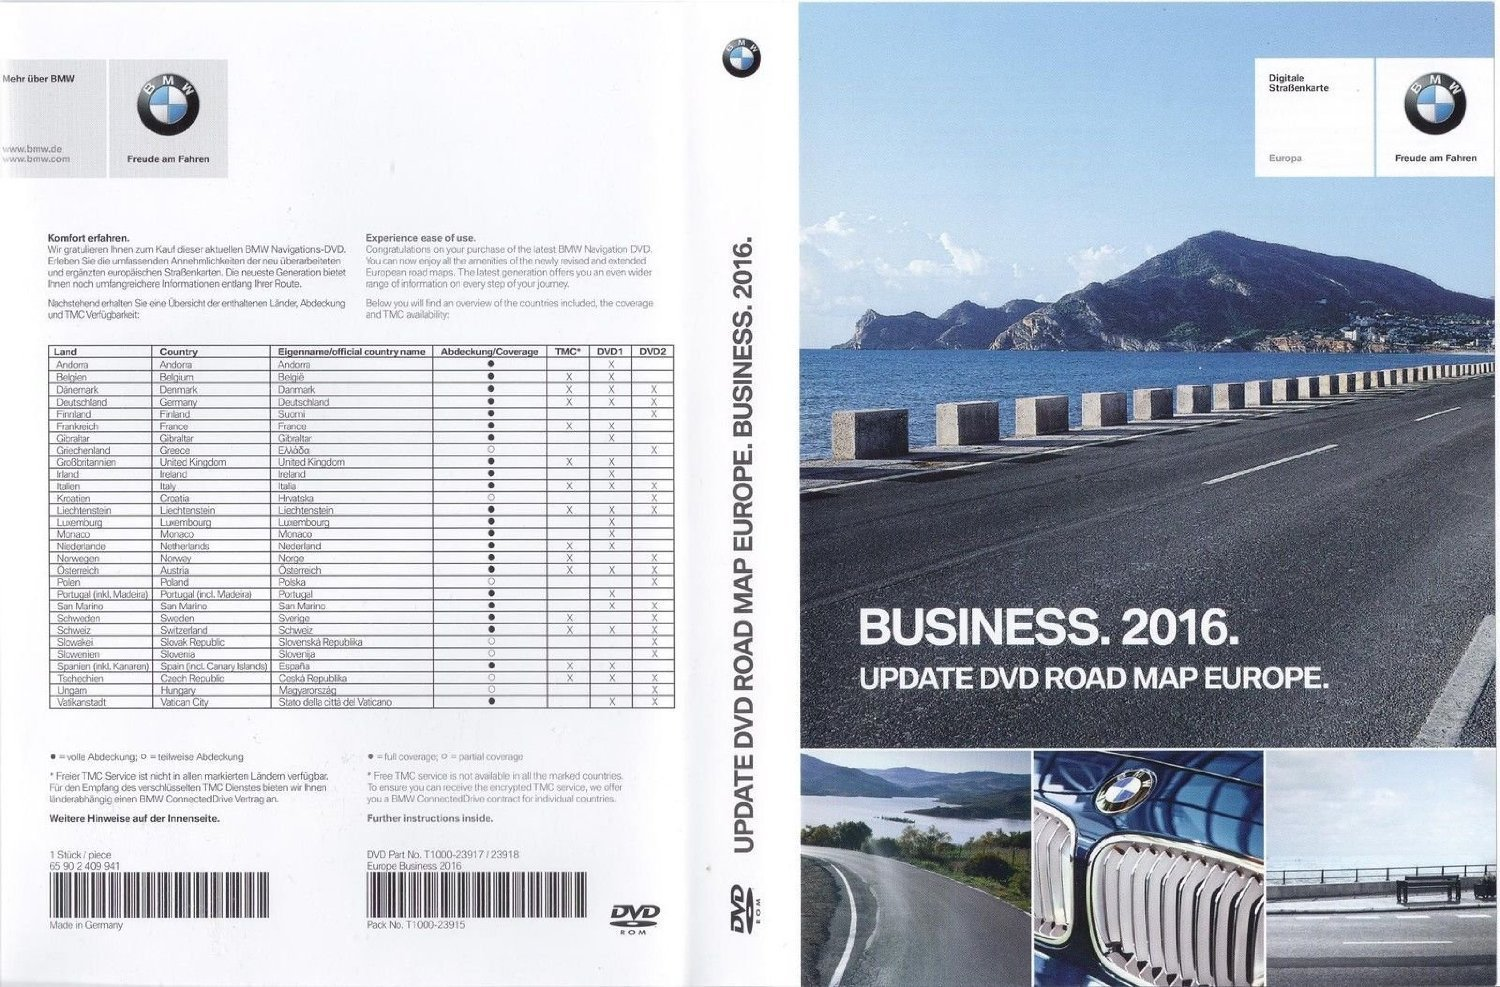 BMW Update DVD Road Map Europe Business 2016 (65 90 2 409 941 ...